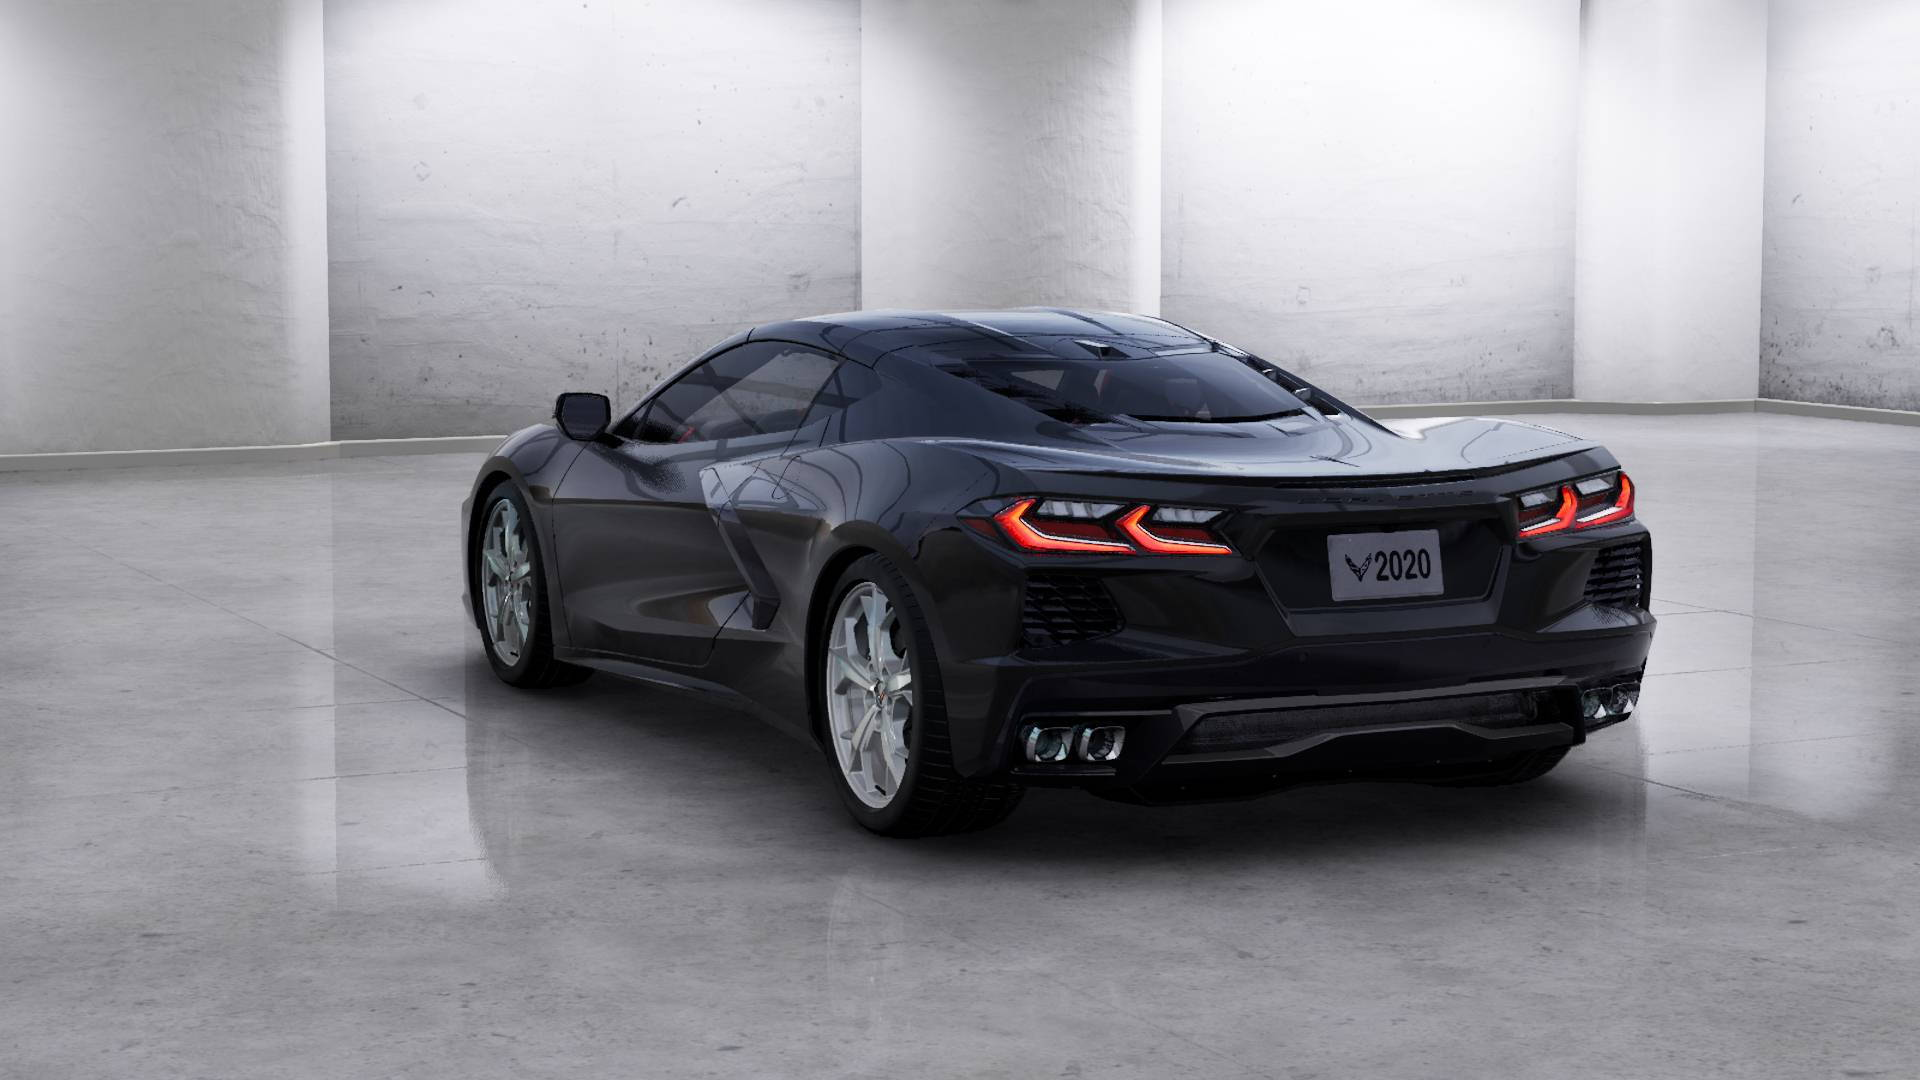 2020 Chevrolet Corvette Stingray build configurator